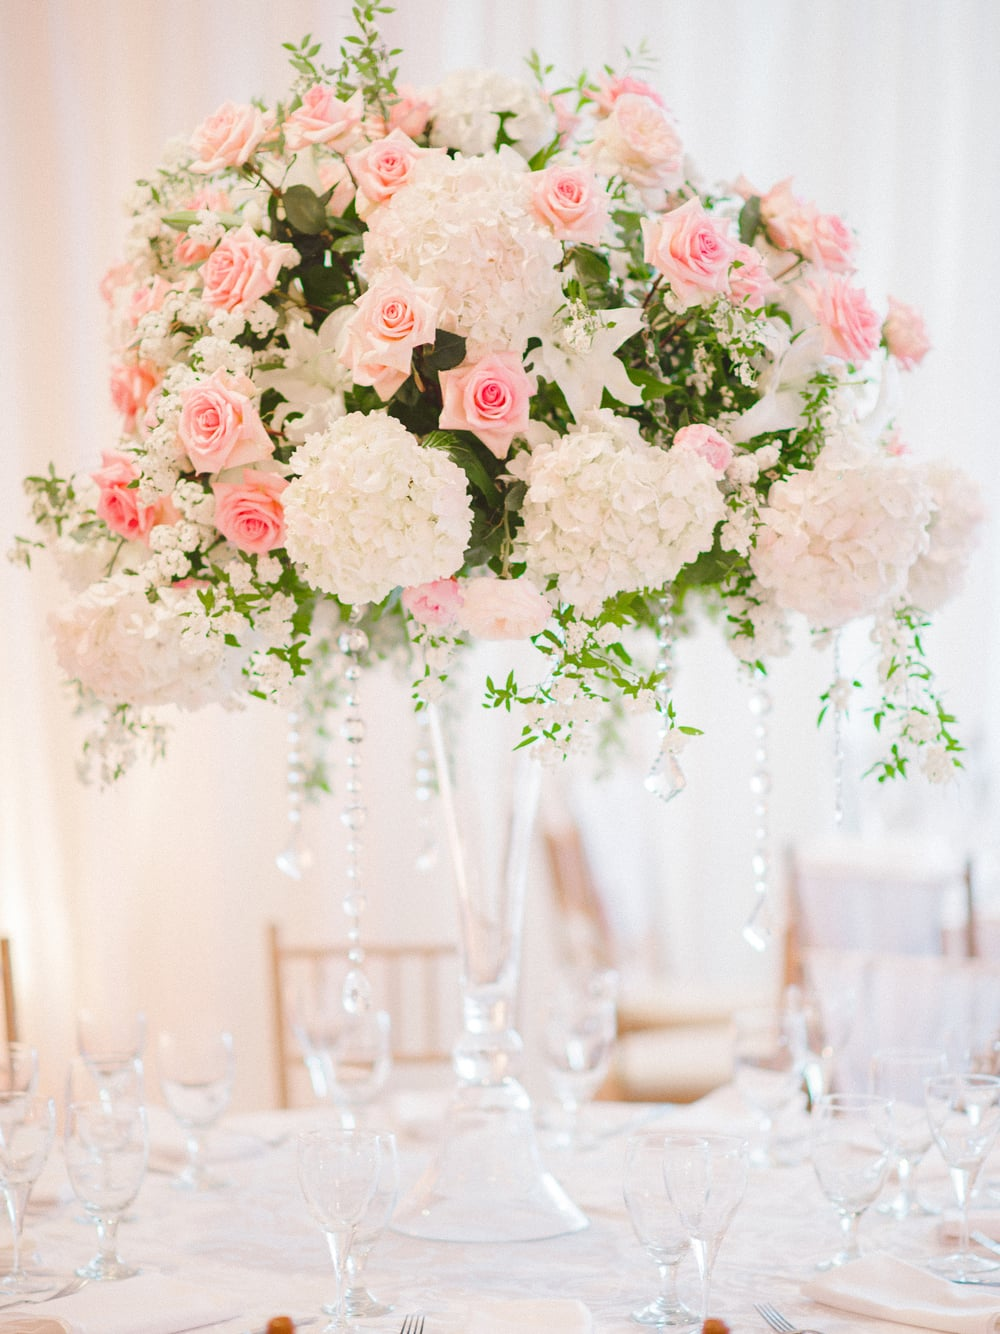 Best lowcountry centerpieces — a wedding